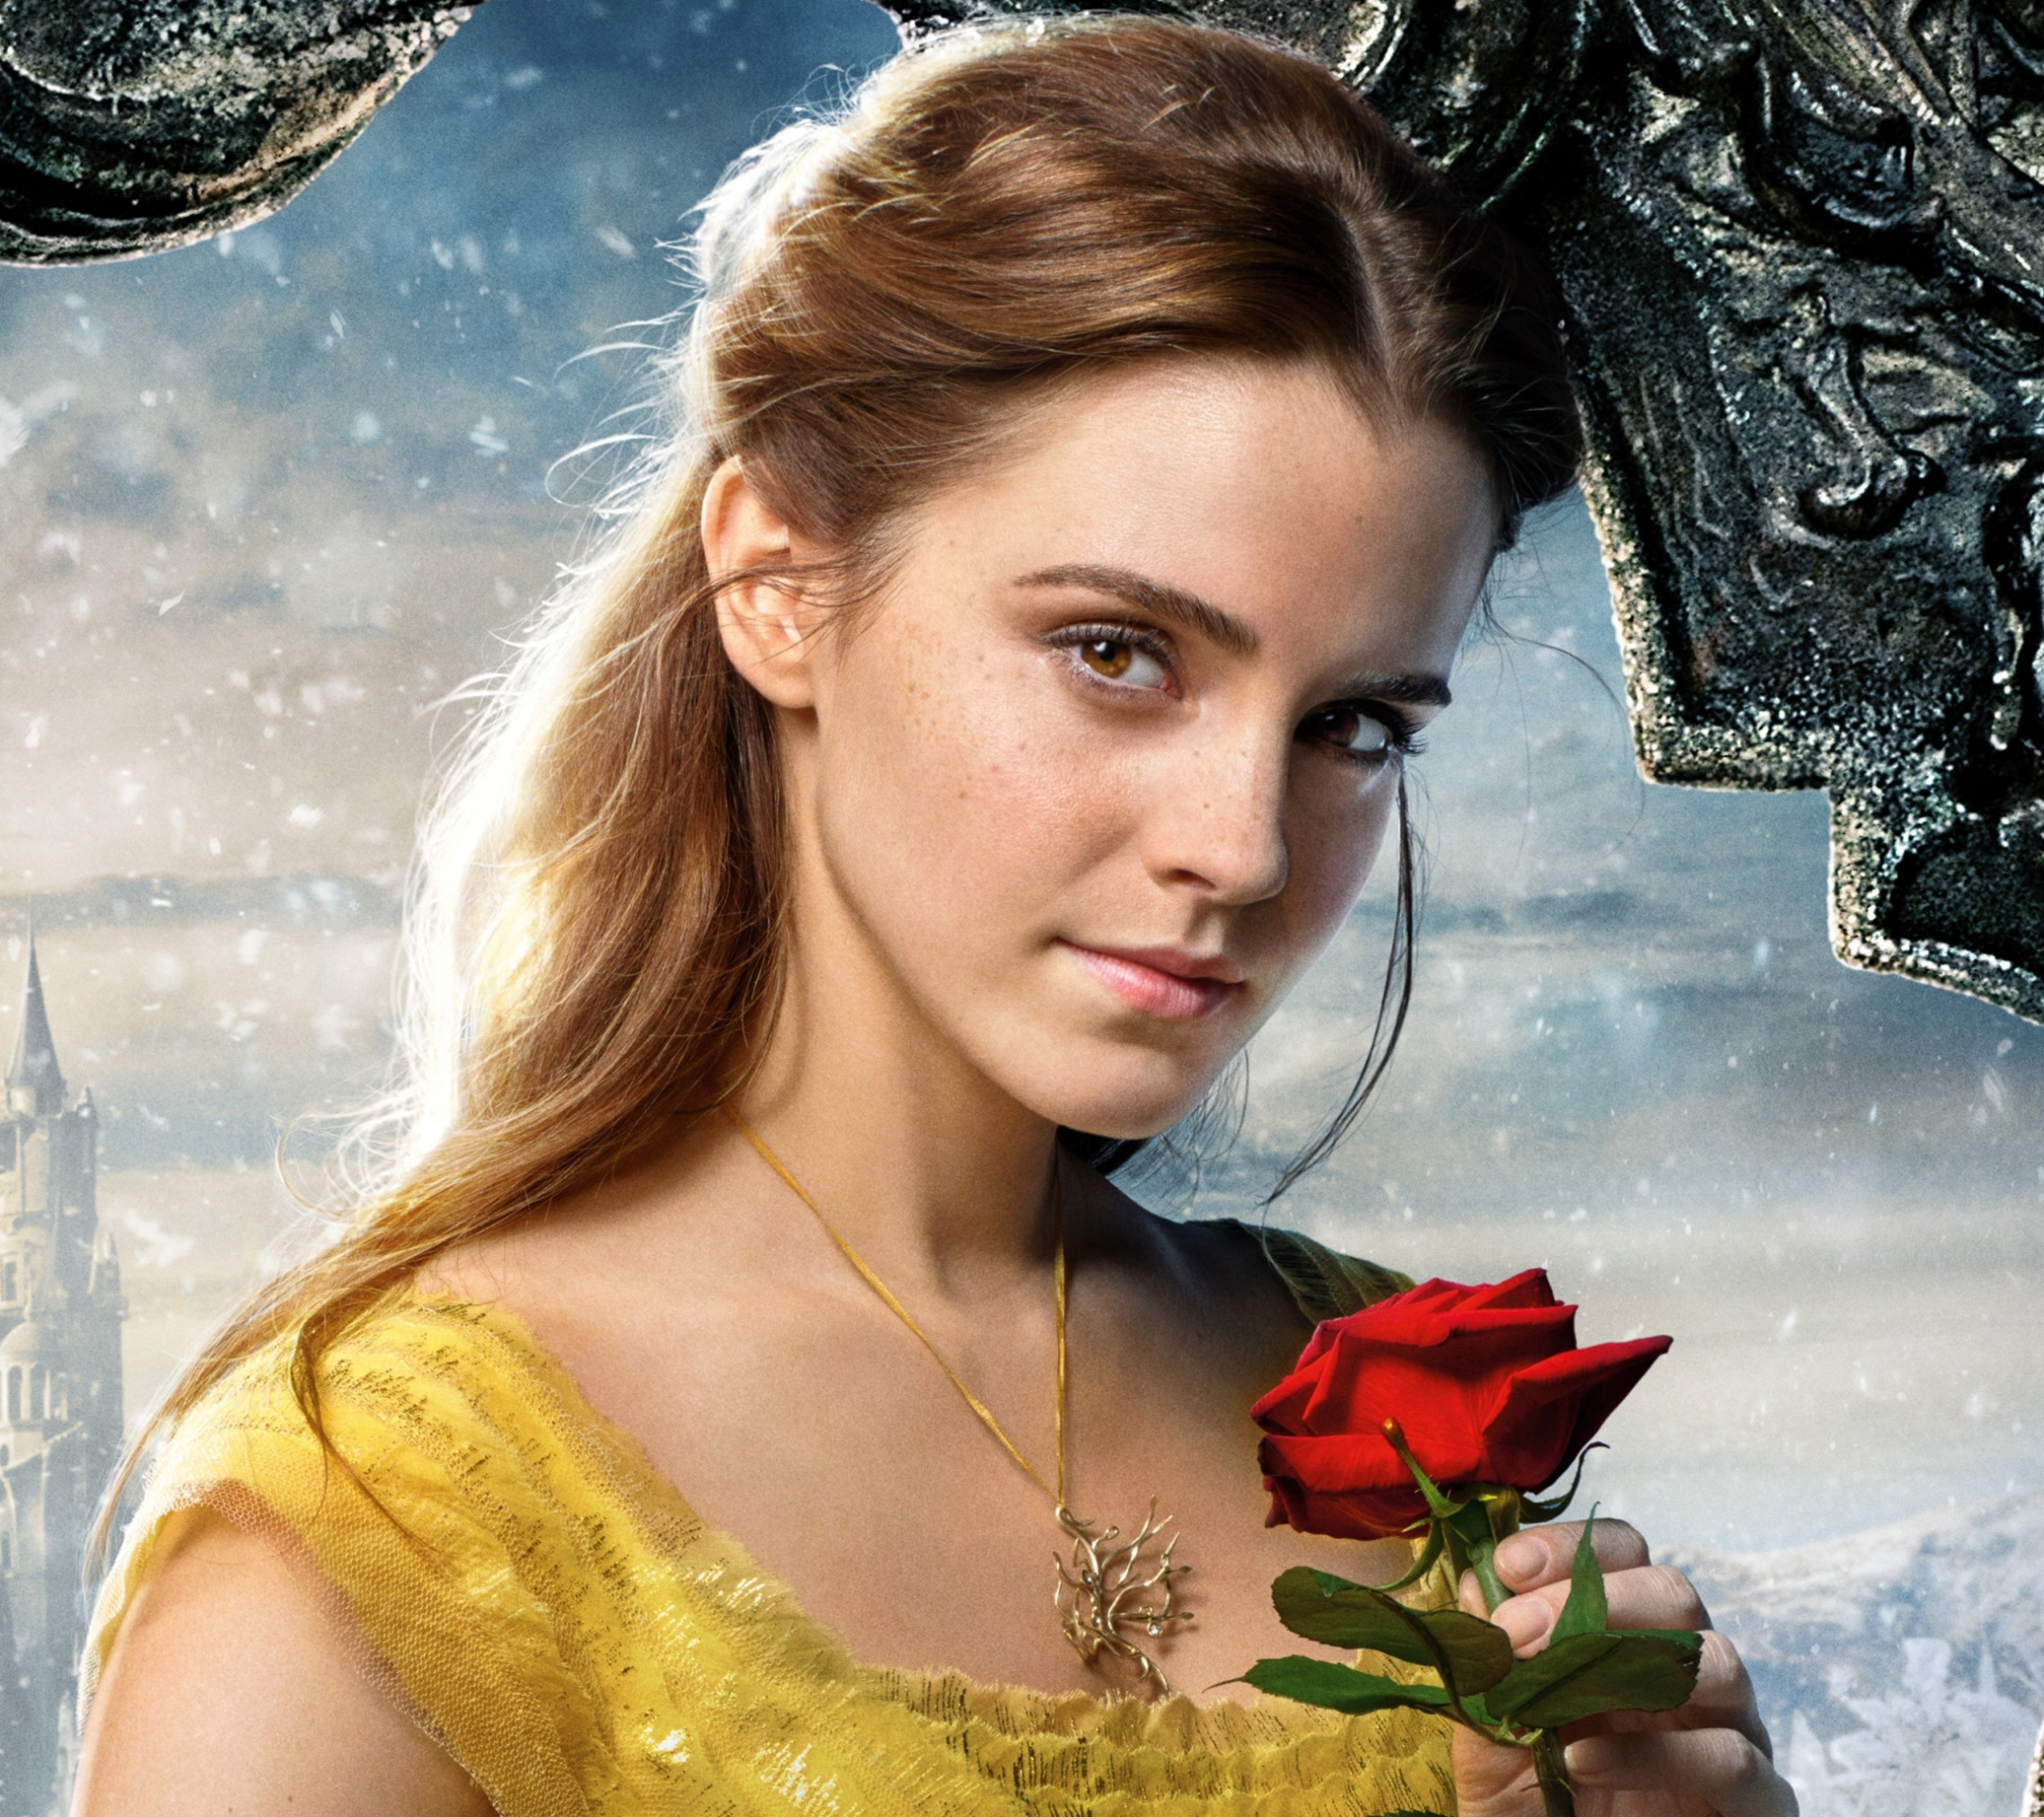 Movie Beauty And The Beast 2017 2160x1920 Wallpaper Id 672112